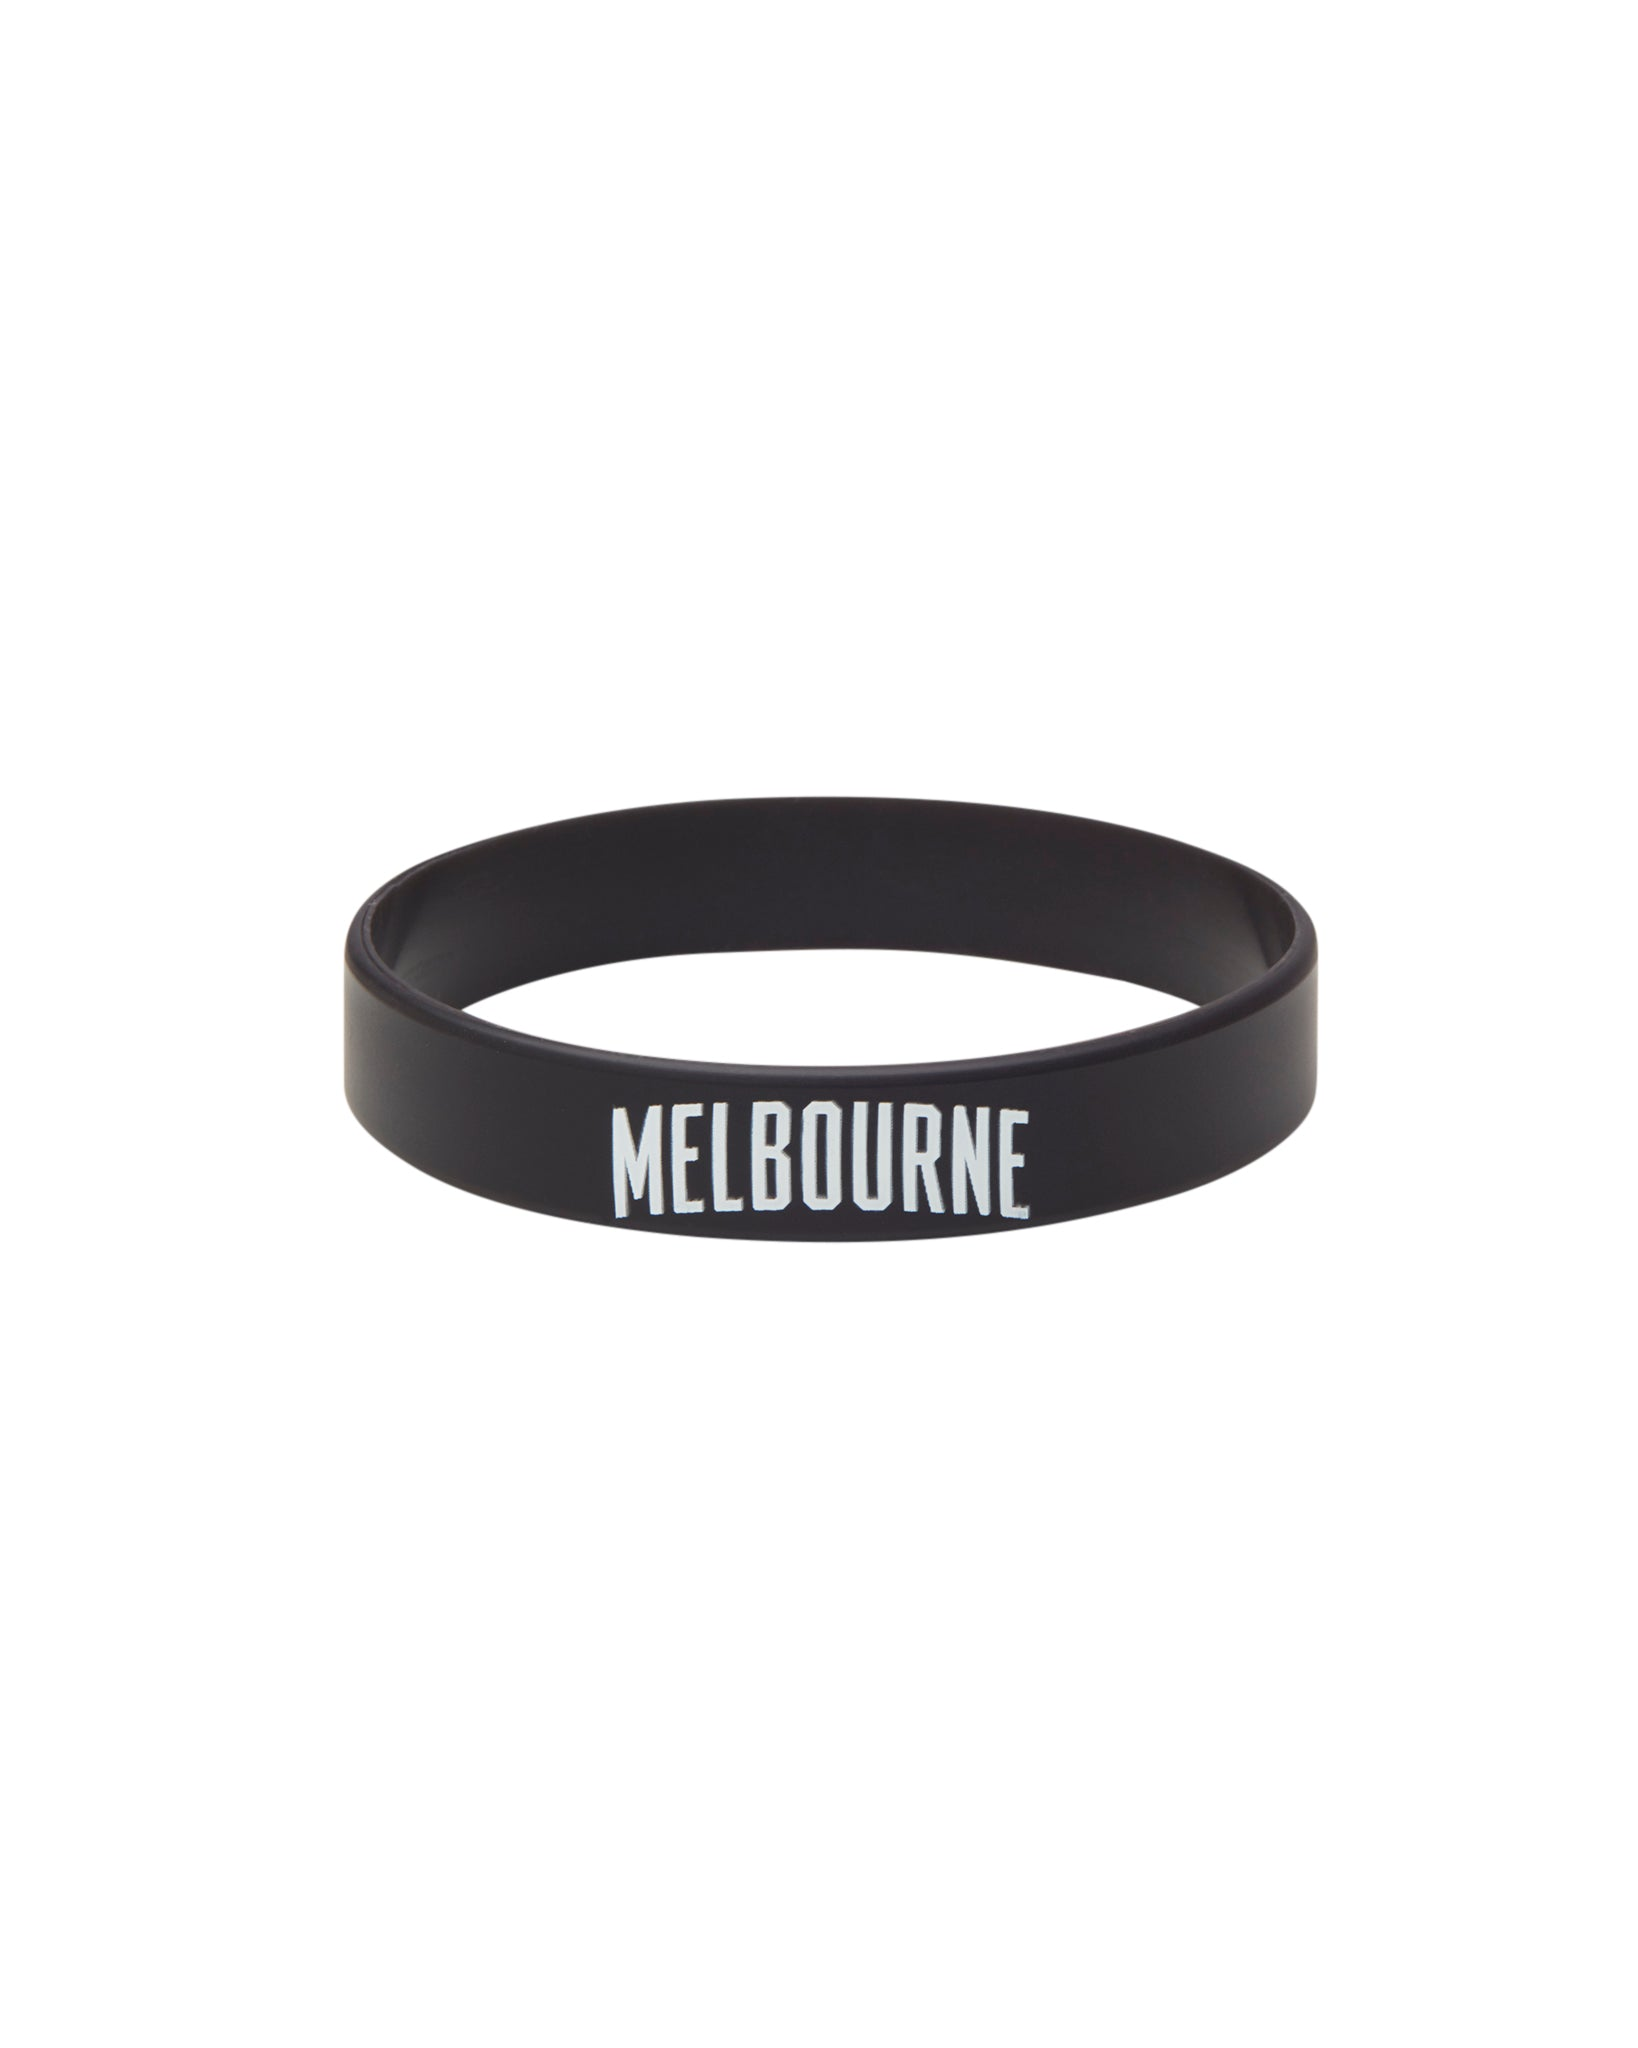 Melbourne United 19/20 Official NBL Silicone Wristband Set